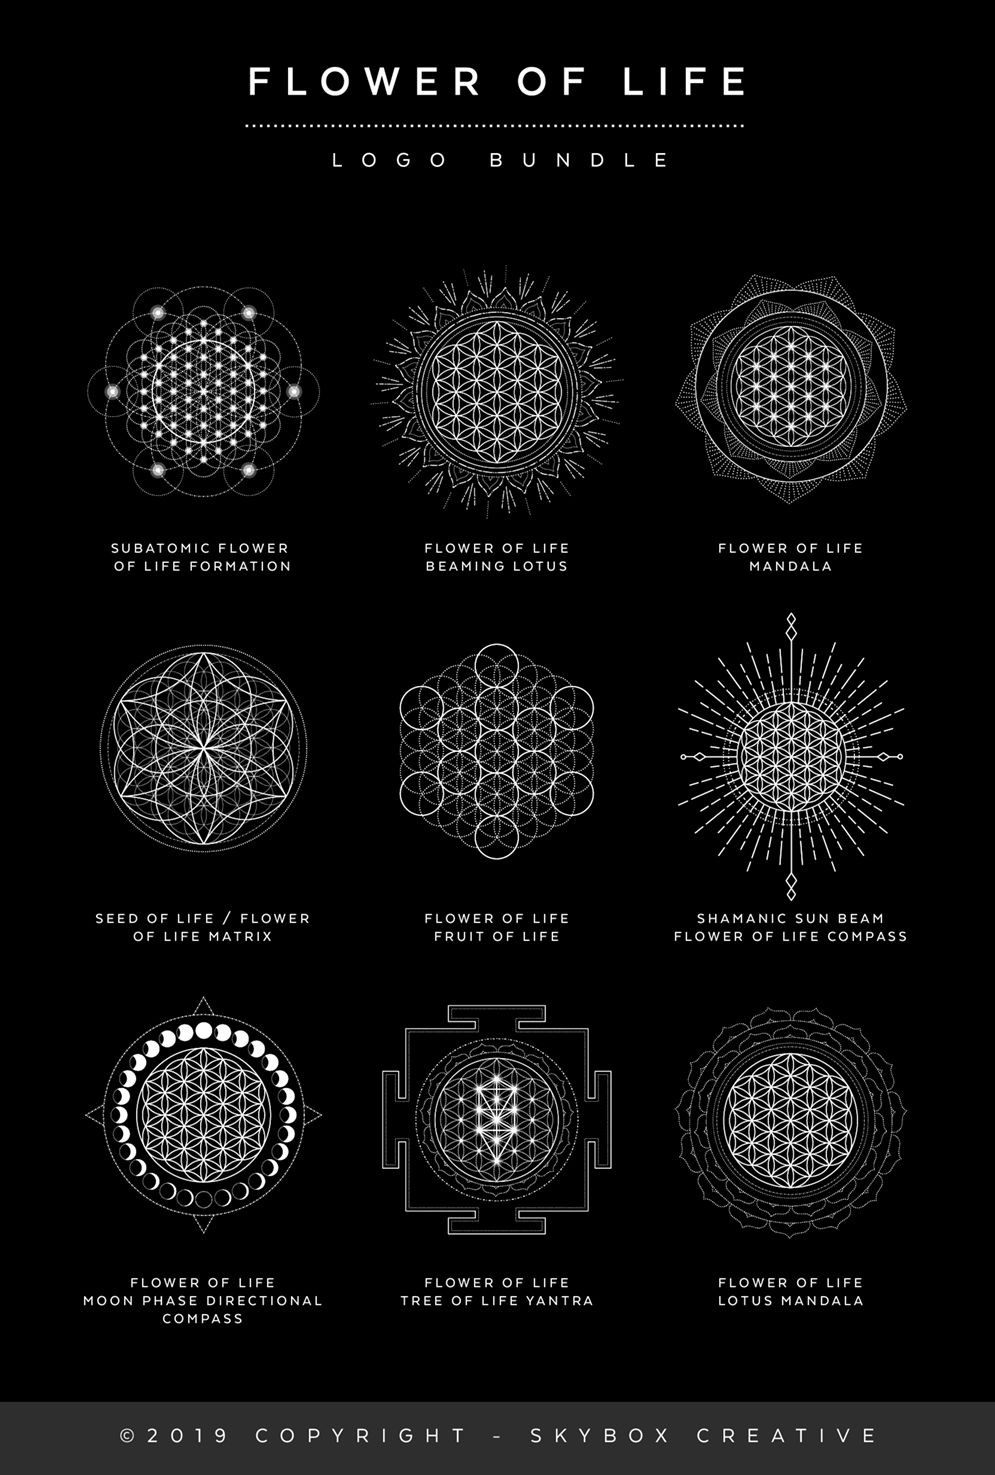 This Flower of Life poster shows various sacred formations